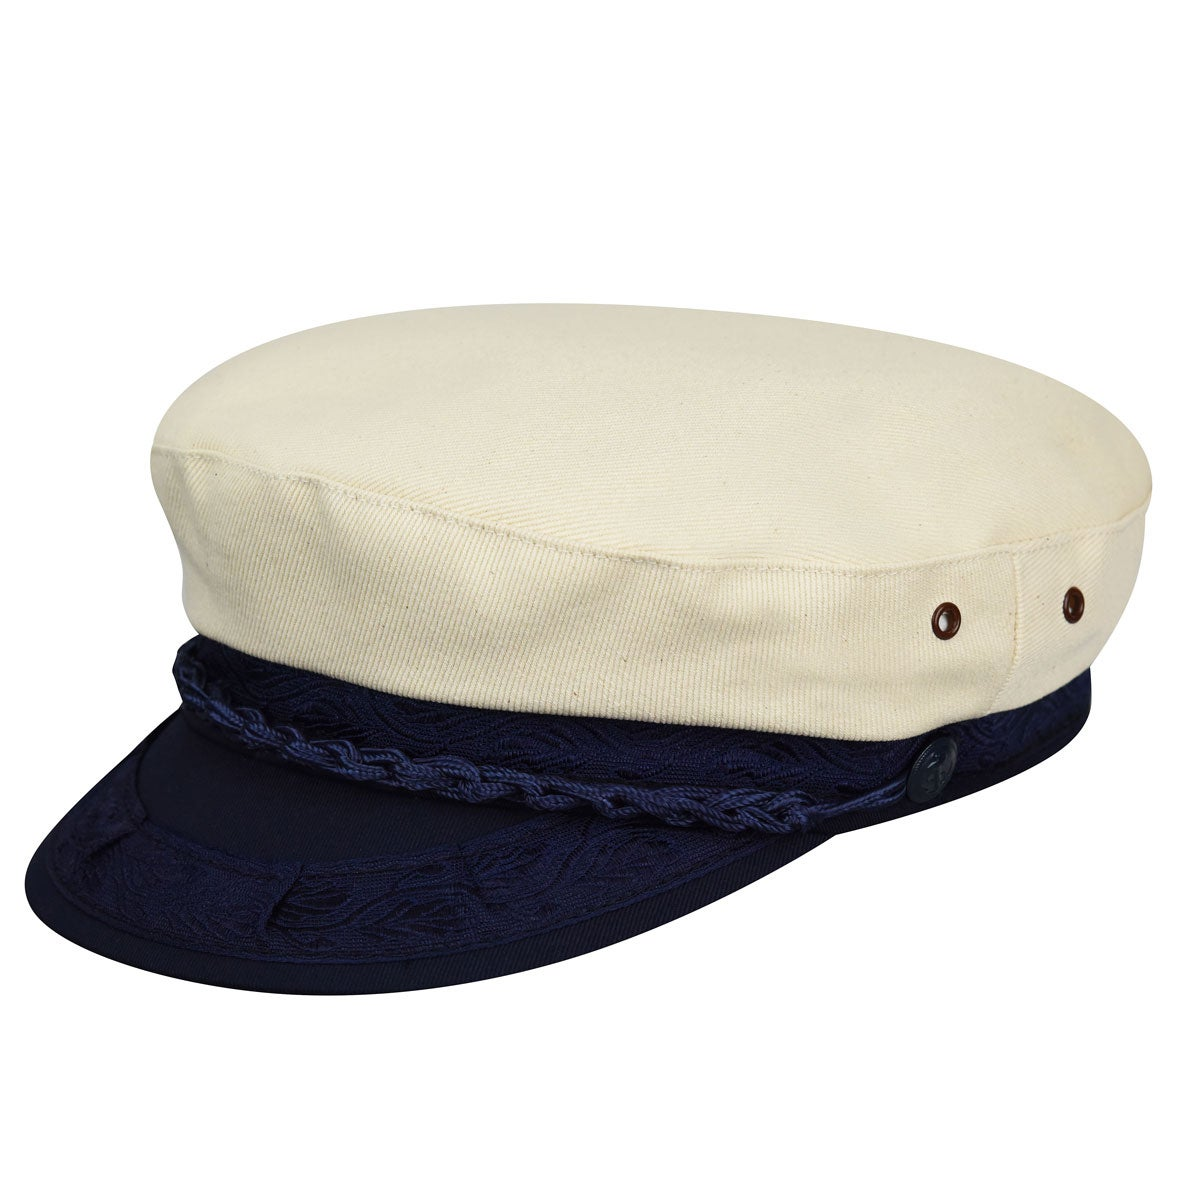 1960s – 70s Style Men's Hats Authentic Greek Canvas Cap $35.00 AT vintagedancer.com